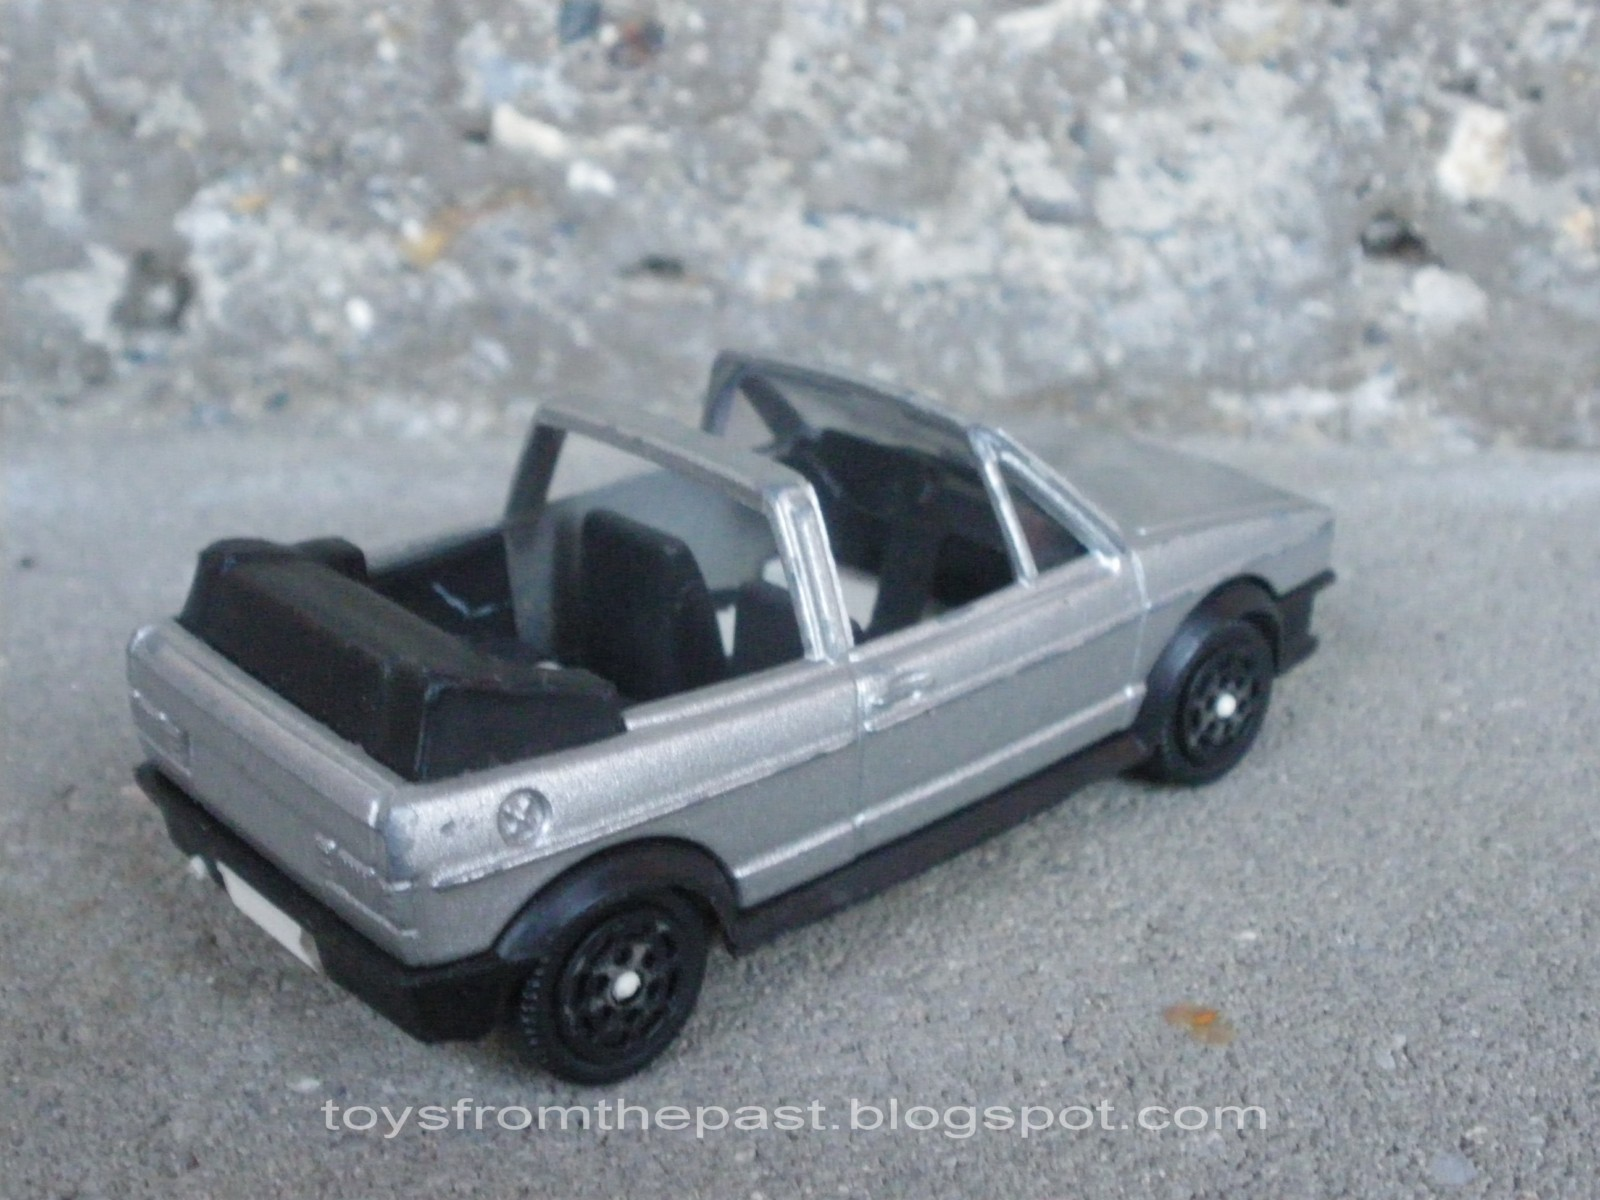 Toys from the Past: #328 HOT WHEELS! – VOLKSWAGEN GOLF